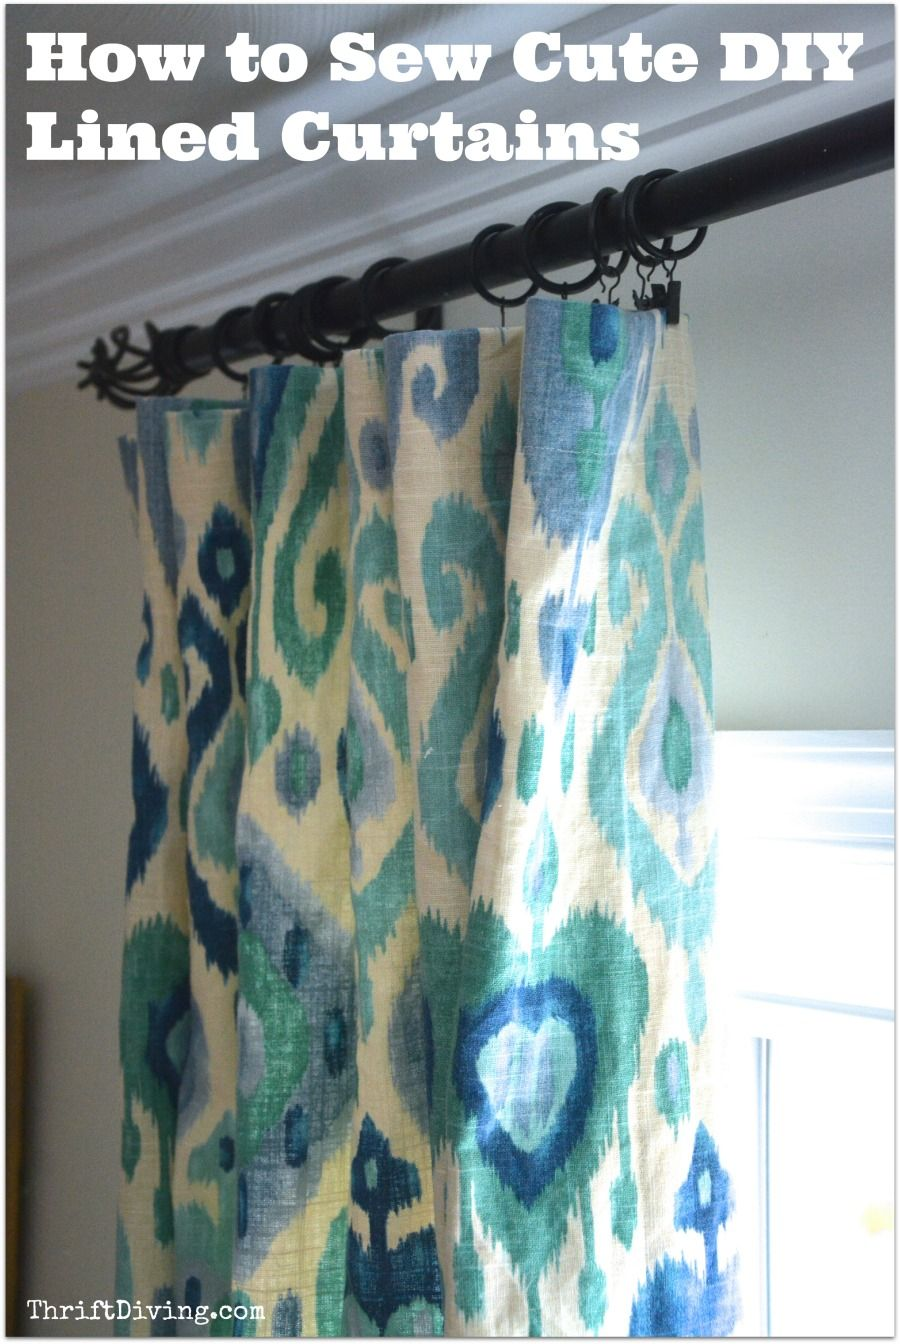 how to sew cute lined diy curtains diy curtains thrift and iron. Black Bedroom Furniture Sets. Home Design Ideas